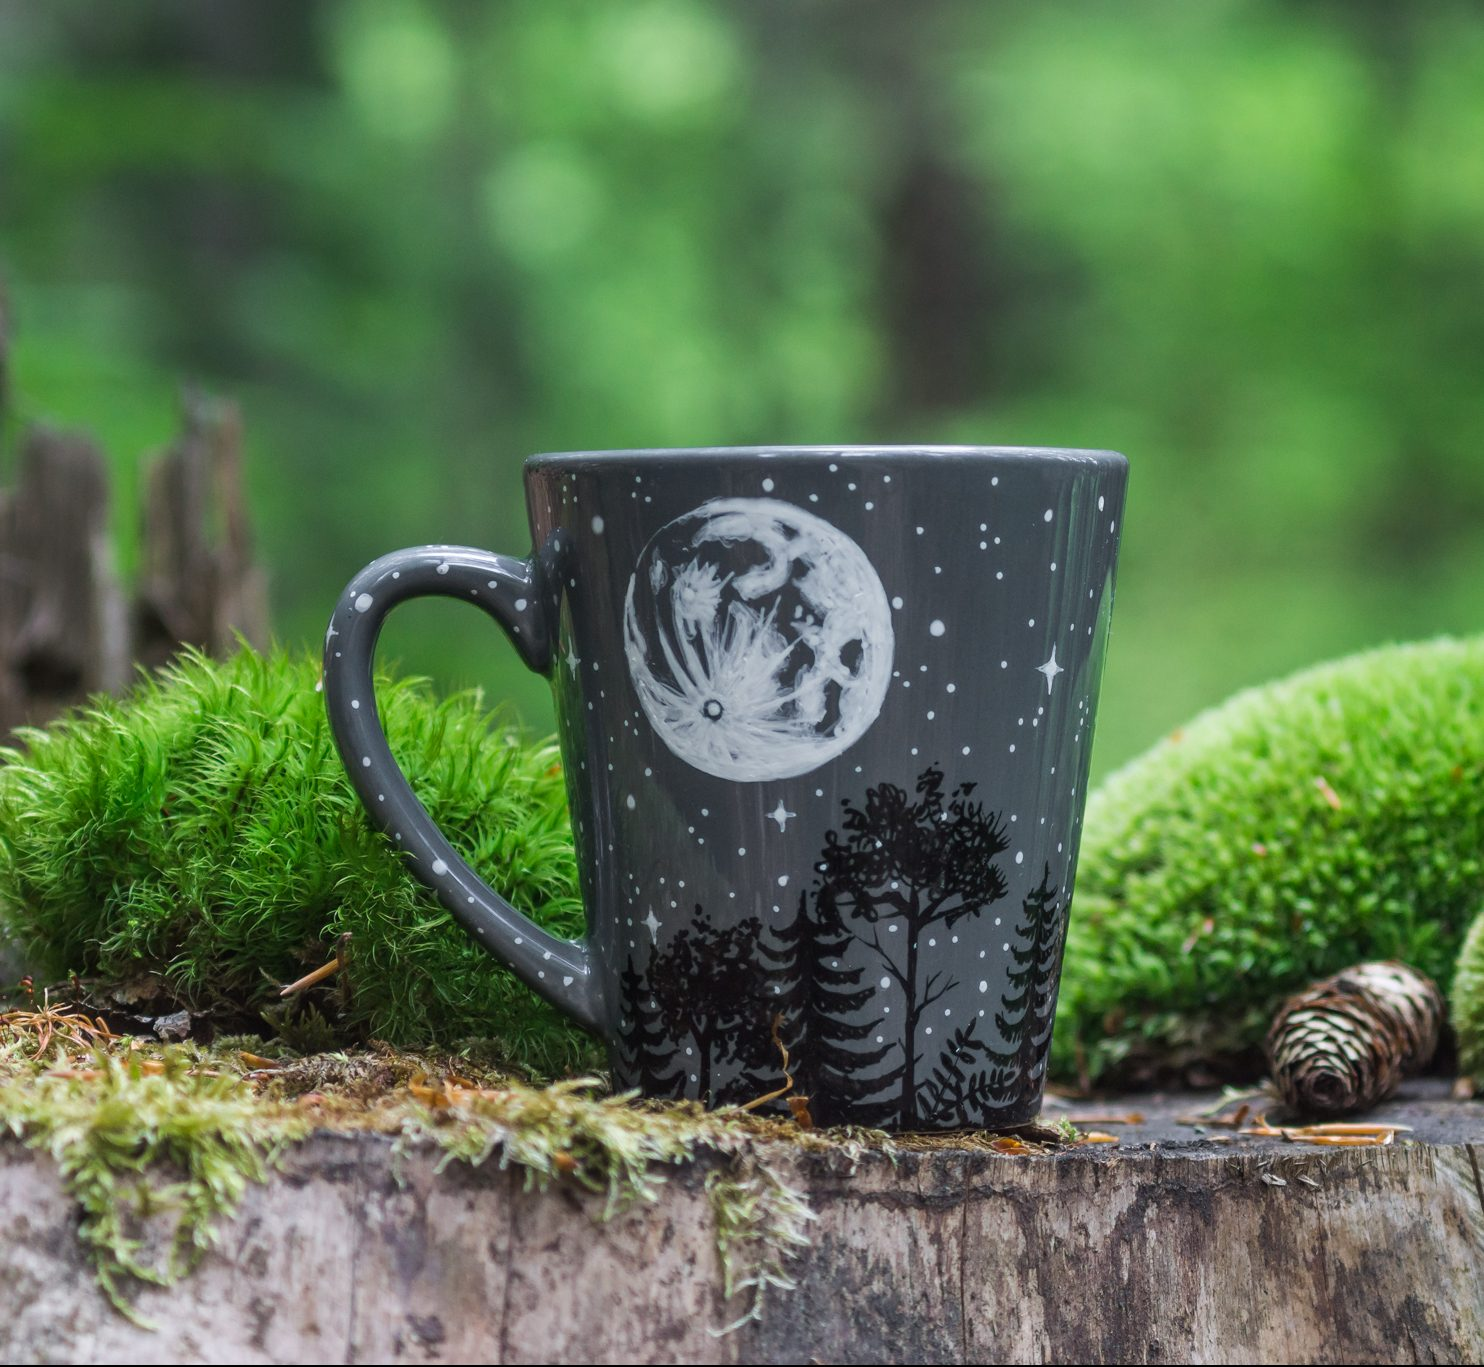 Moon forest night sky constellation mug, forest animals full moon coffe mug, hand painted tree moon illustration, ceramic pottery etsy seller online boutique, starry night art work, gift mug with space illustration